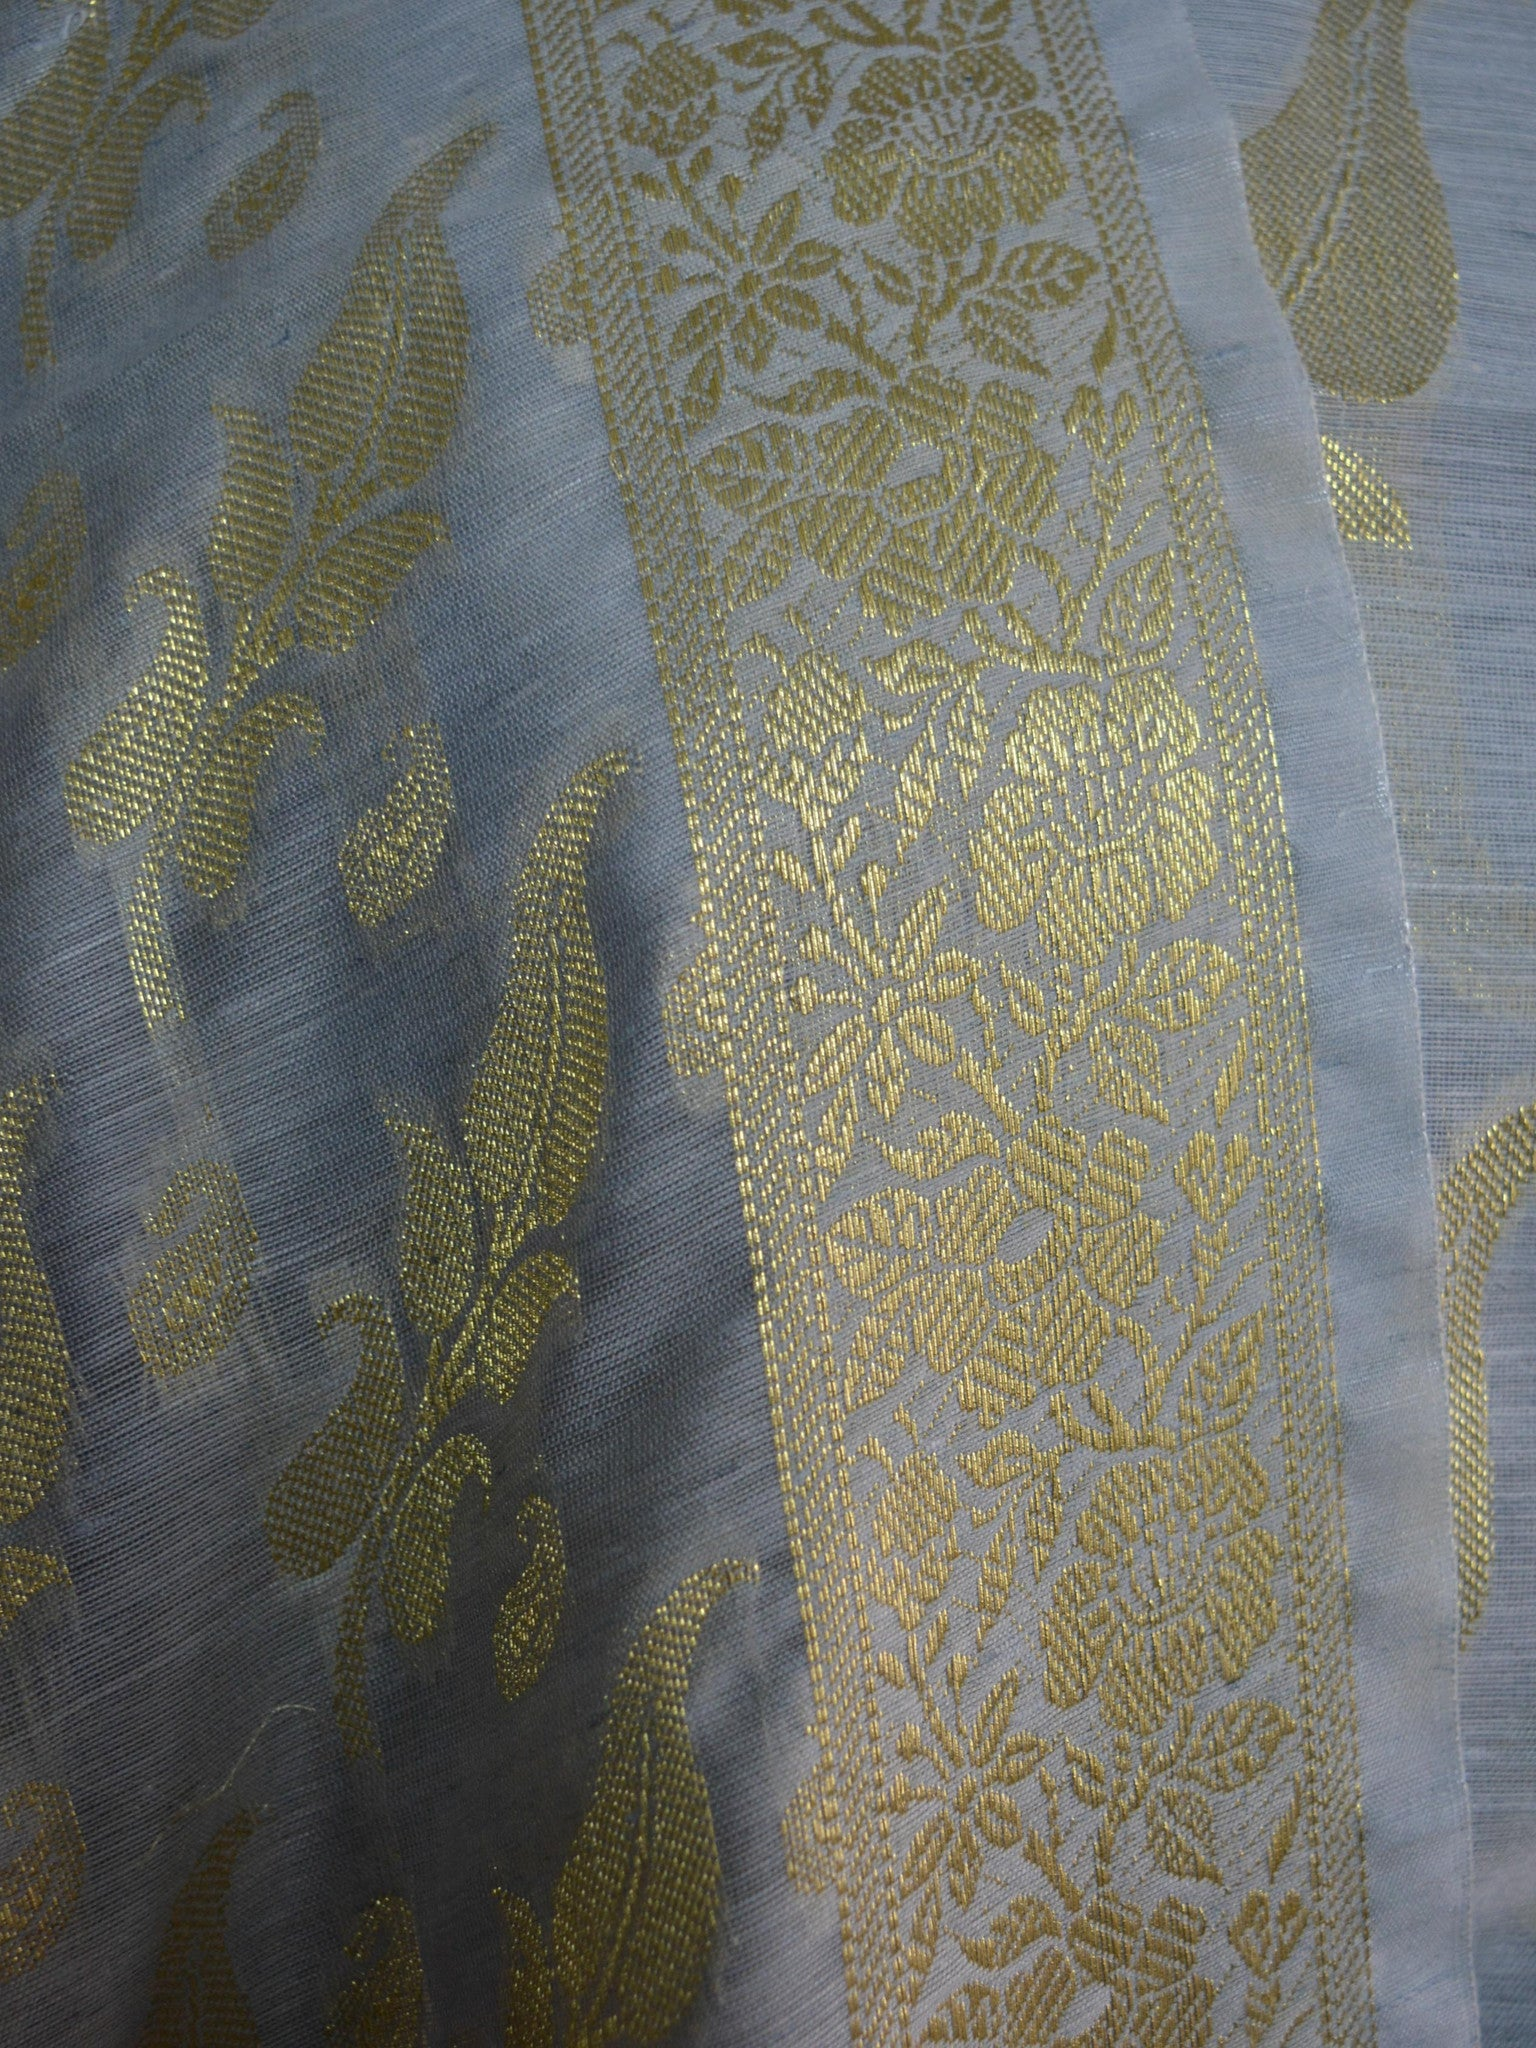 Banarasee/Banarasi Salwar Kameez Cotton Silk Gold Zari Buti Woven Fabric-Grey